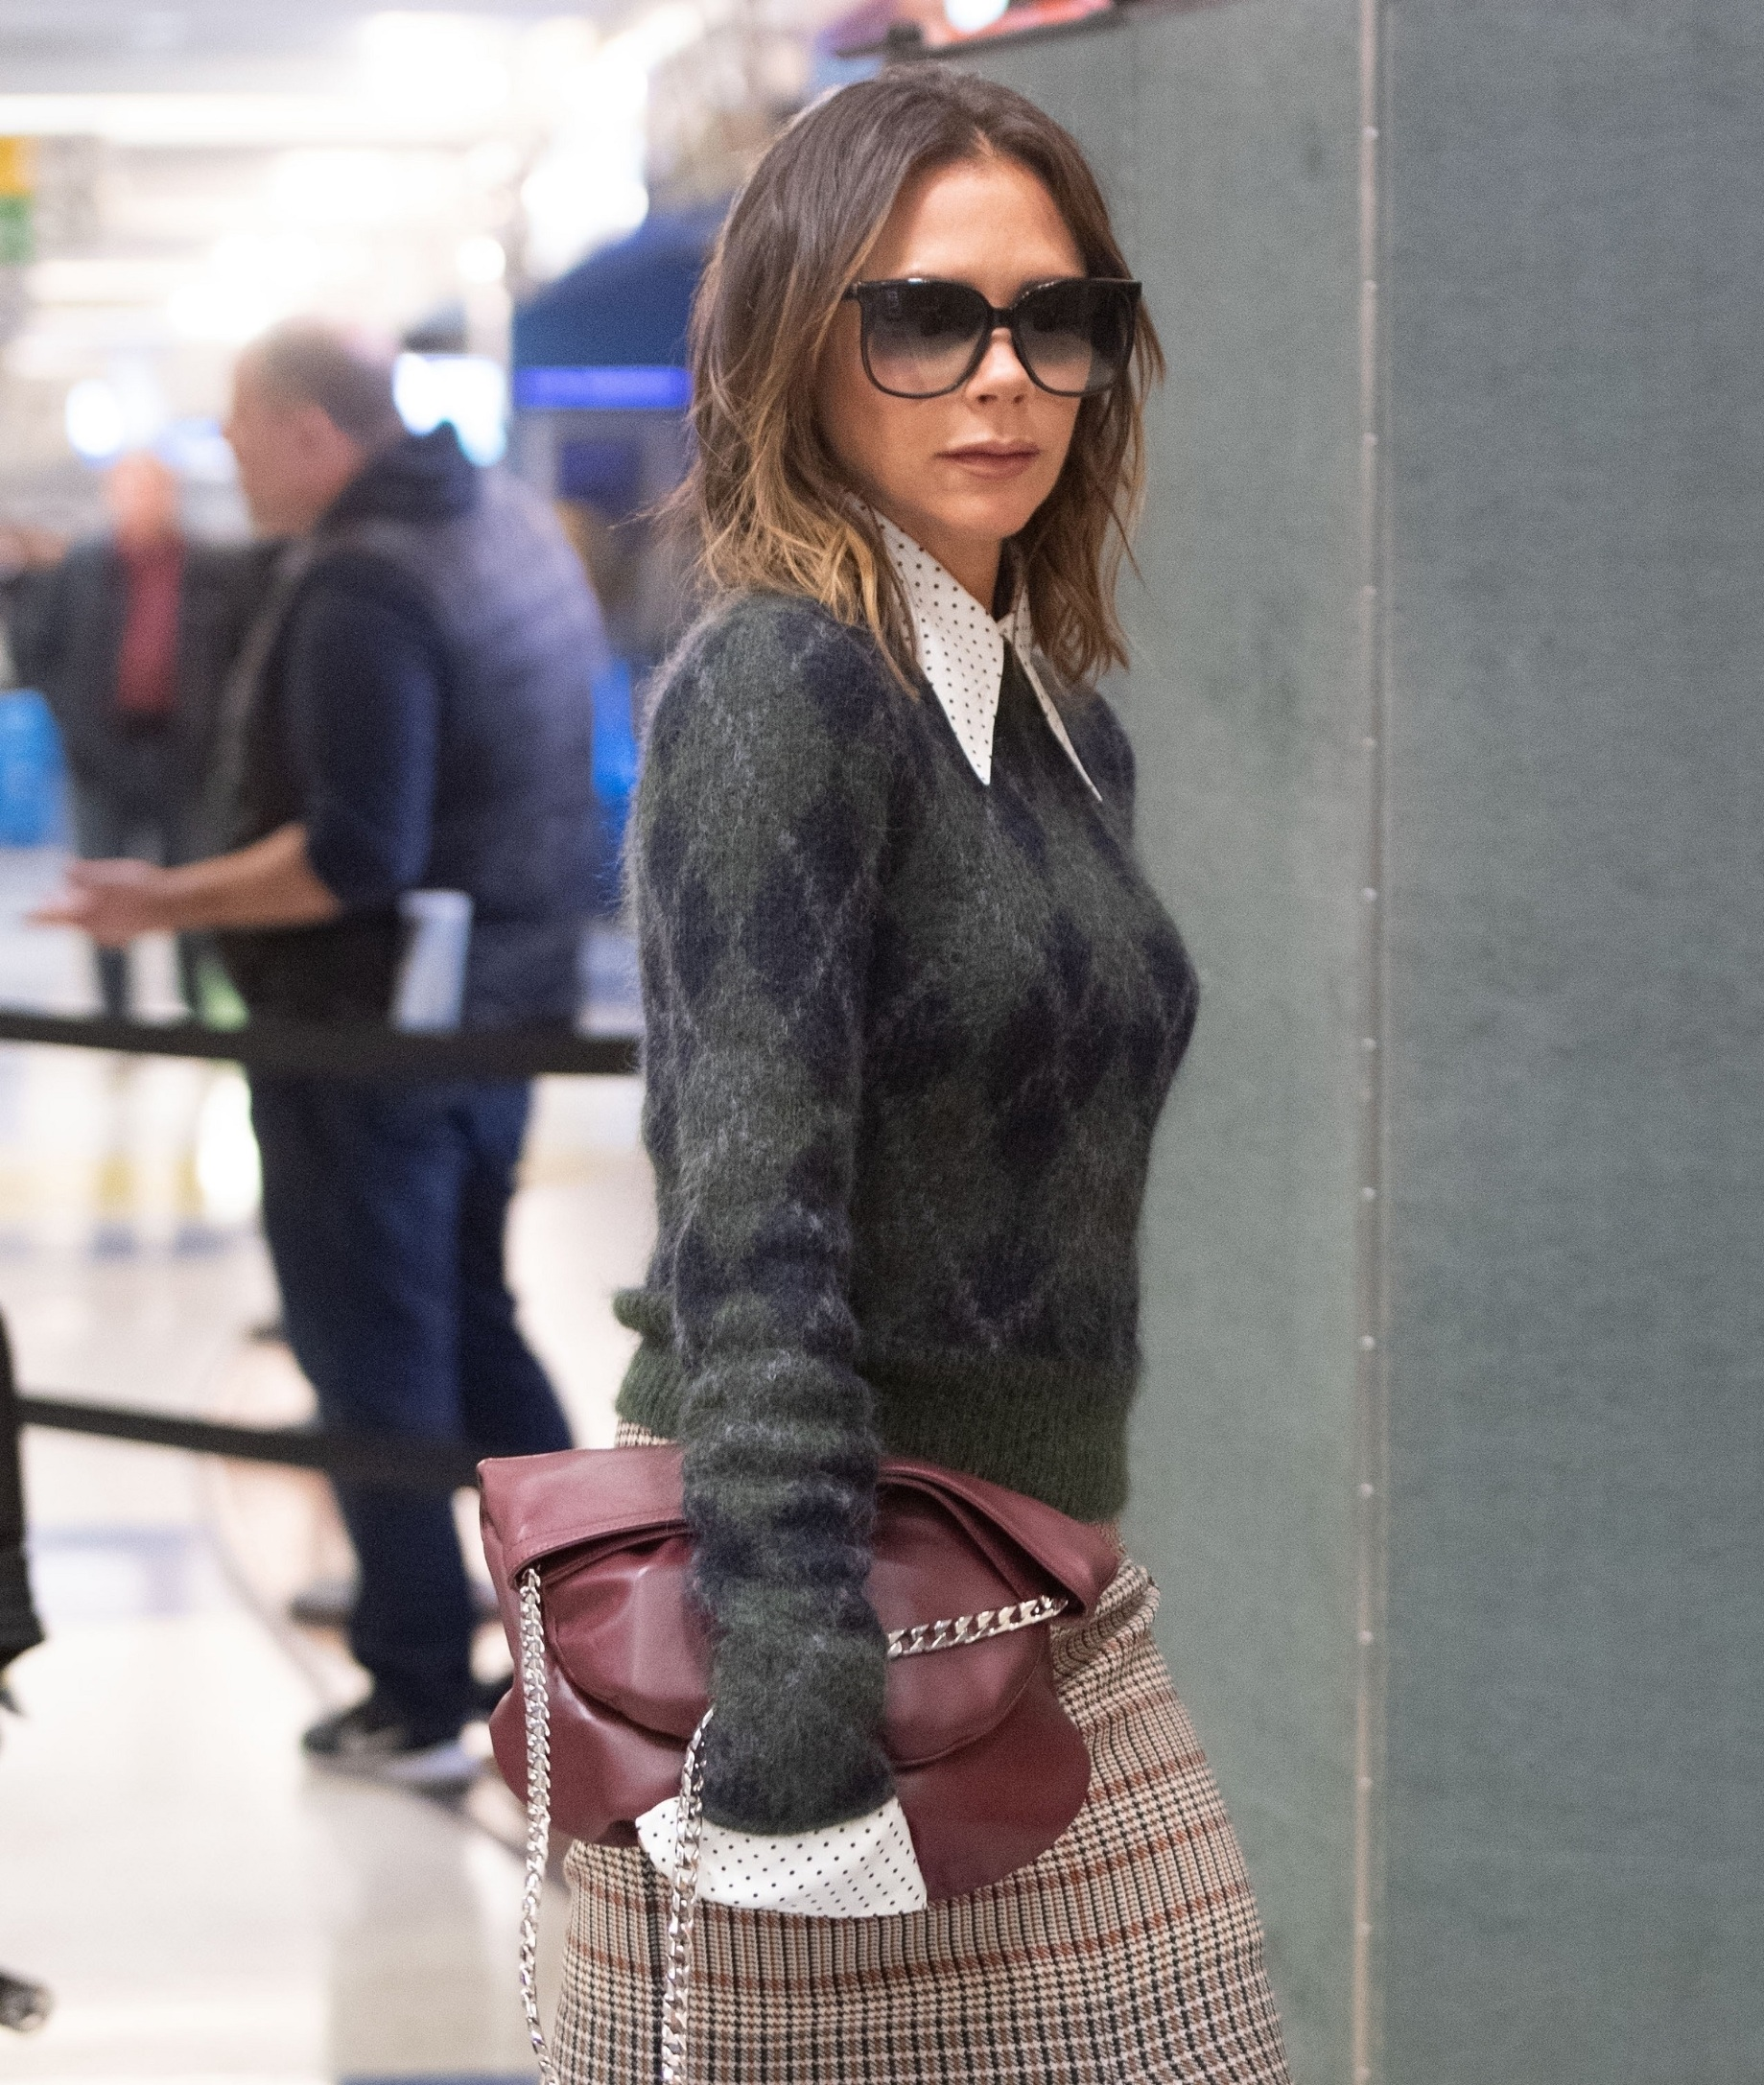 New York, NY  - Victoria Beckham is every bit a fashionista as she lands at JFK airport in NYC.  *UK Clients - Pictures Containing Children Please Pixelate Face Prior To Publication*, Image: 481249950, License: Rights-managed, Restrictions: , Model Release: no, Credit line: BACKGRID / Backgrid USA / Profimedia